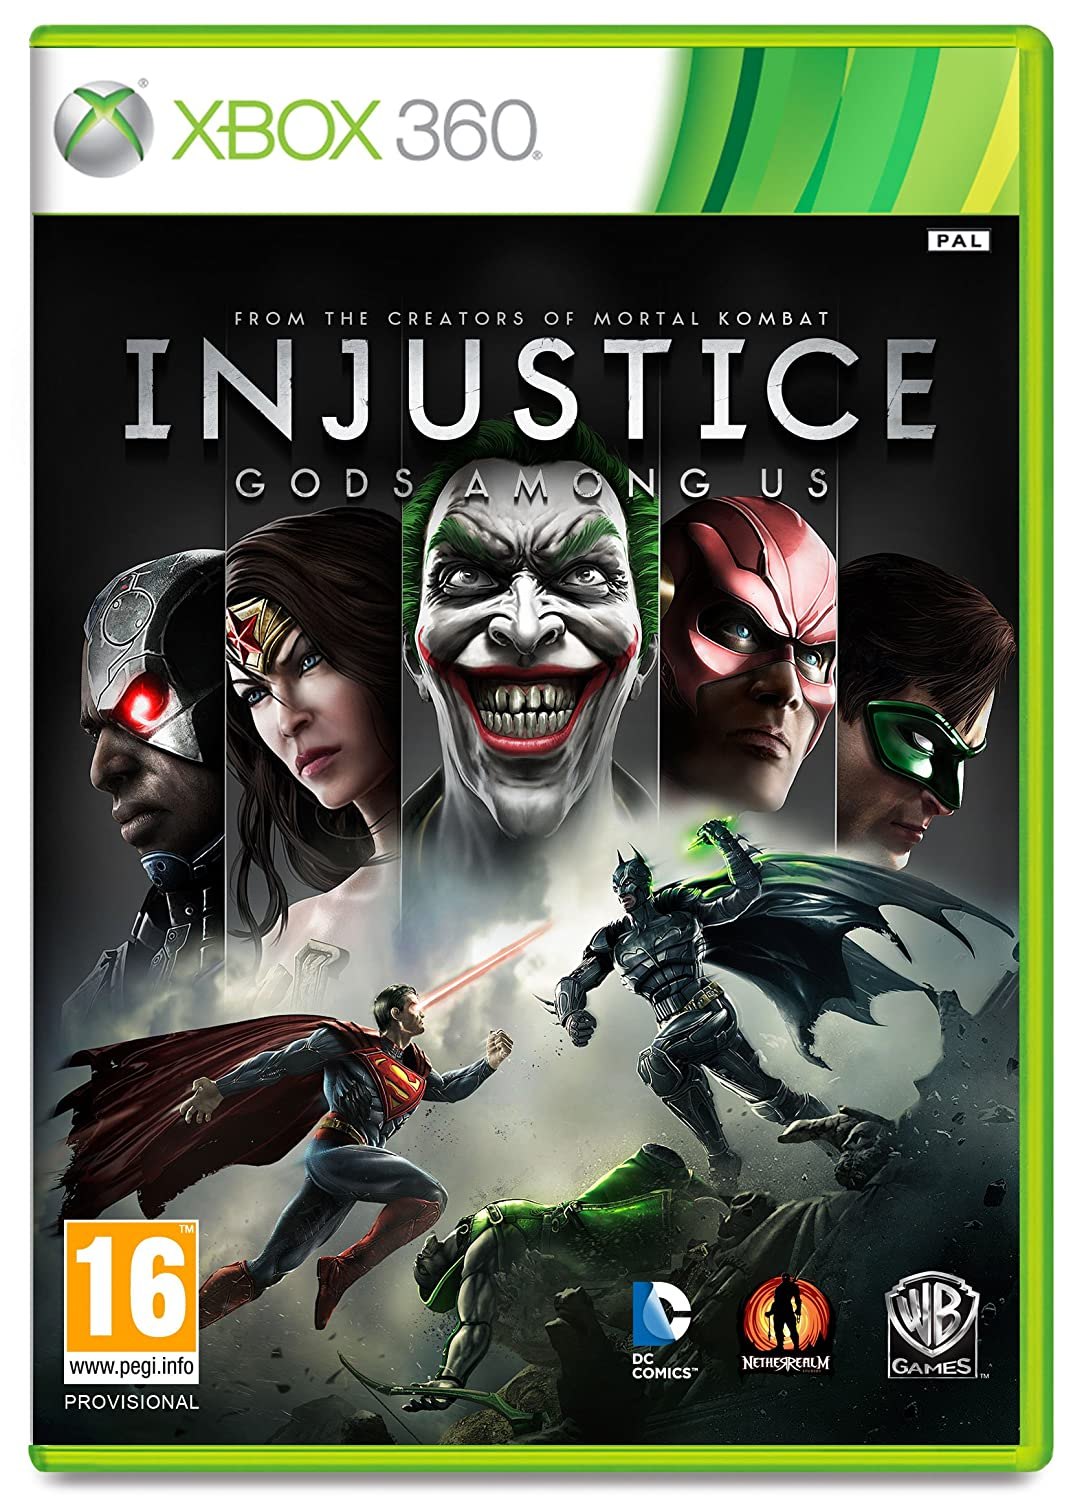 Injustice Gods Among Us Xbox 360 Amazoncouk PC Video Games